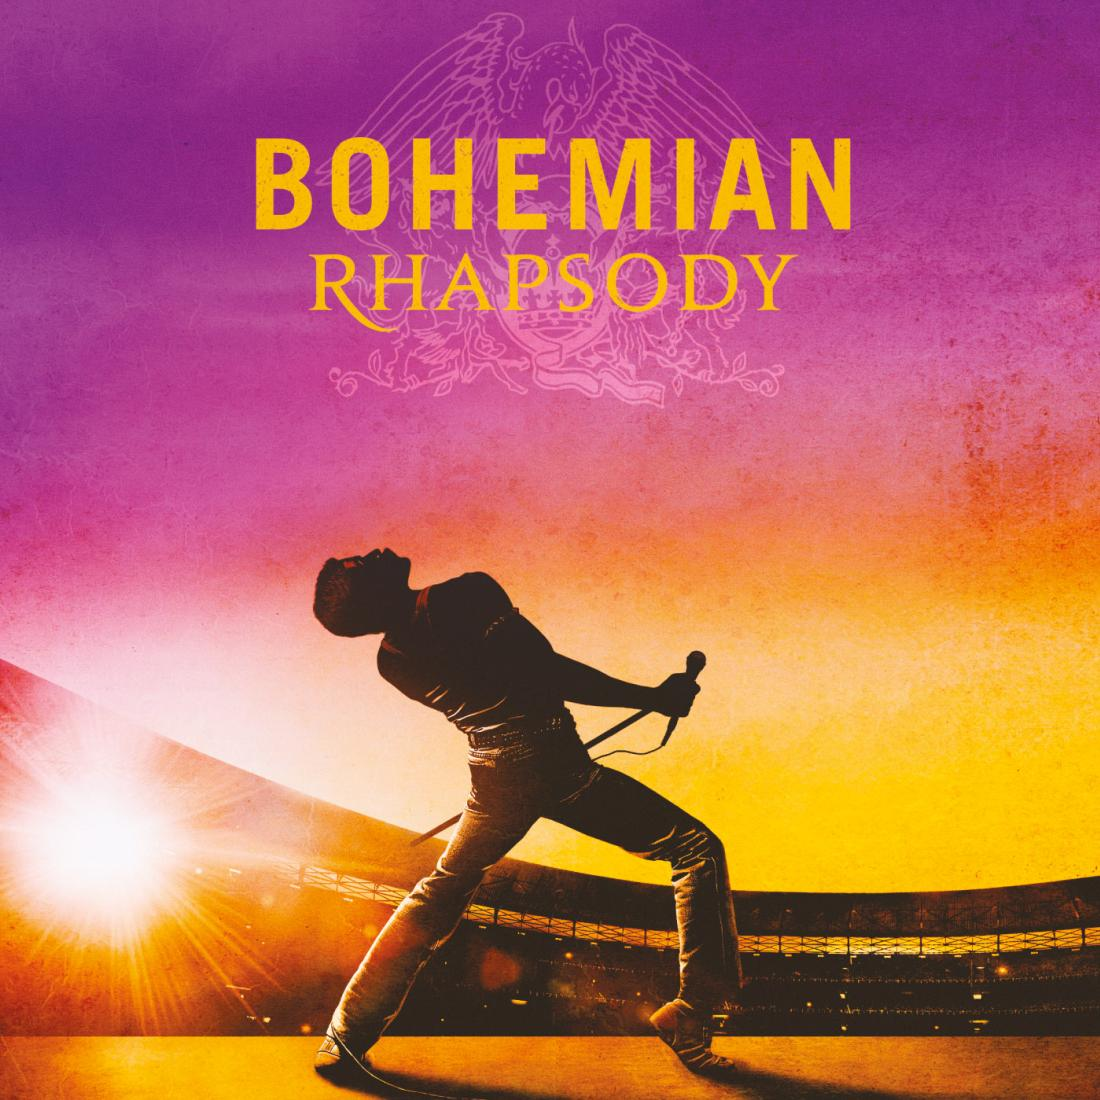 Queen Bohemian Rhapsody The Original Soundtrack Cover Art